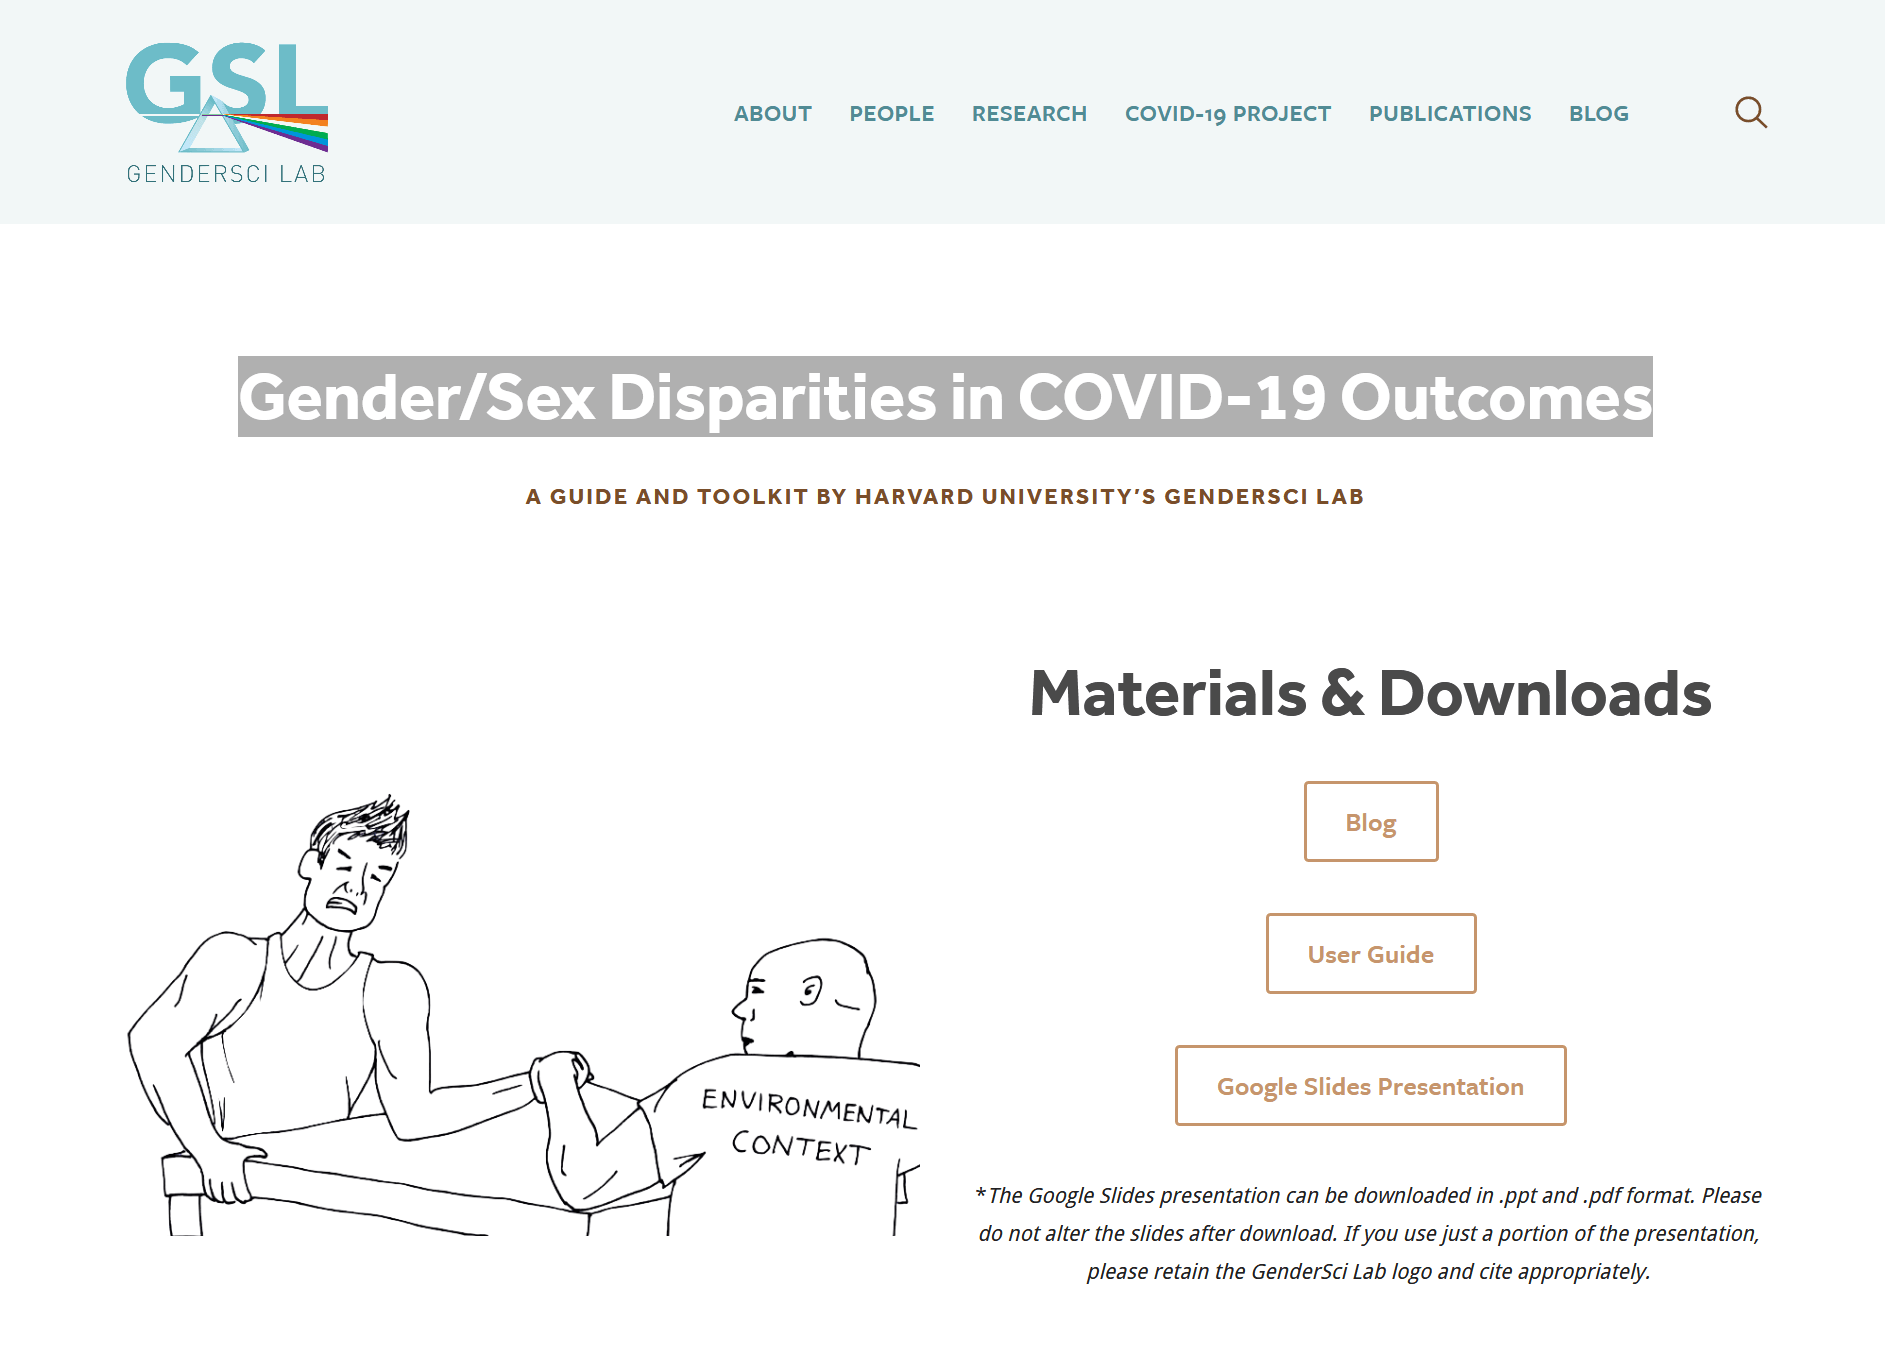 Gender/sex disparities in COVID-19 outcomes: A guide and toolkit by Harvard University's GenderSci Lab